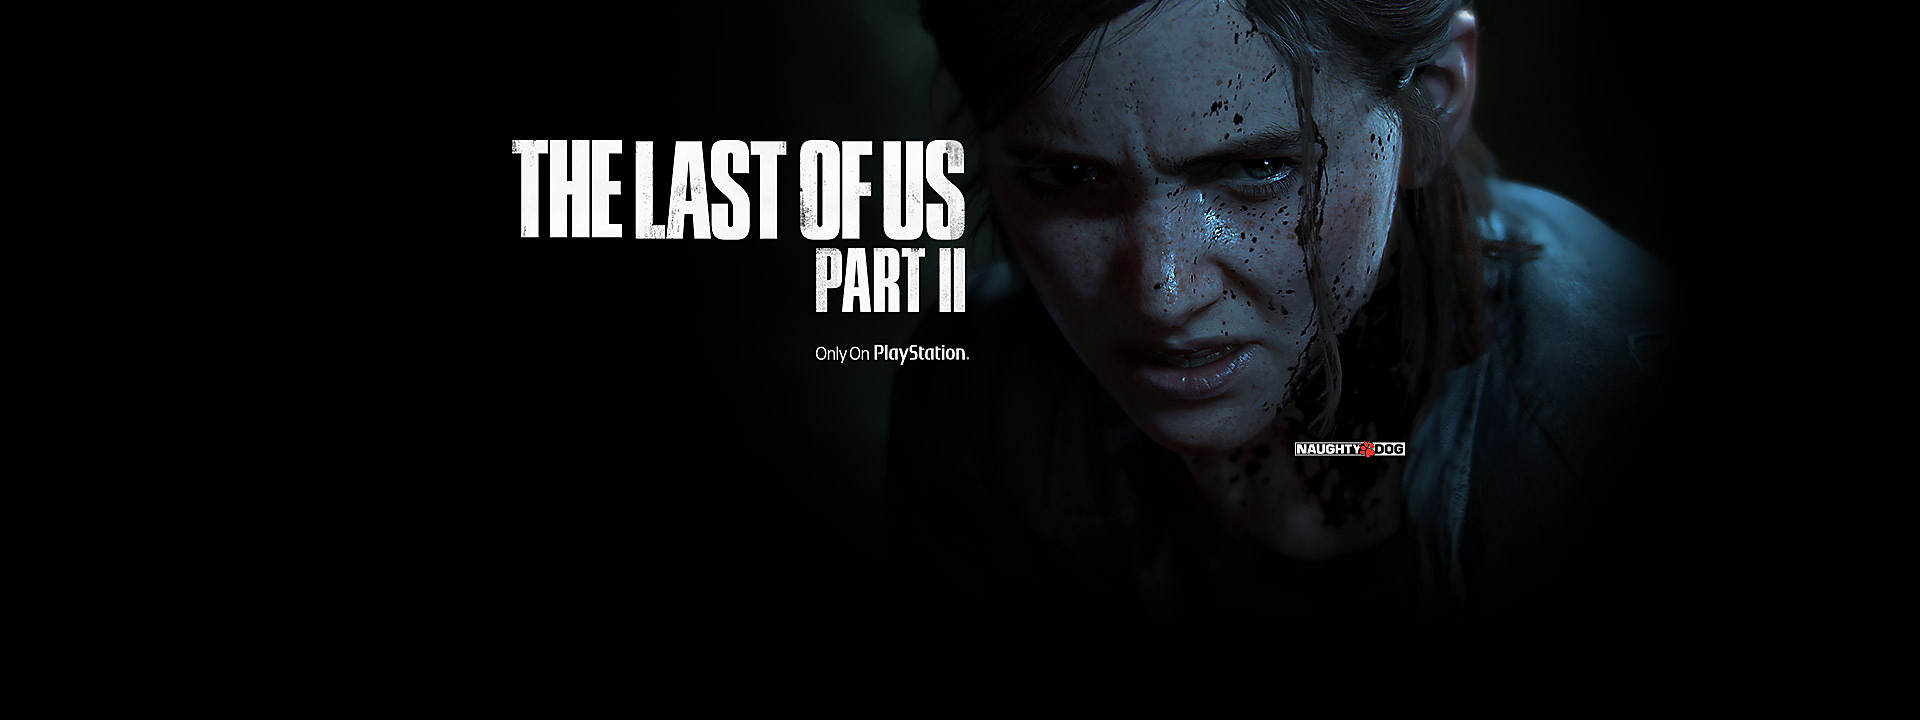 The Last of Us Part II - Narrative Trailer Now Available